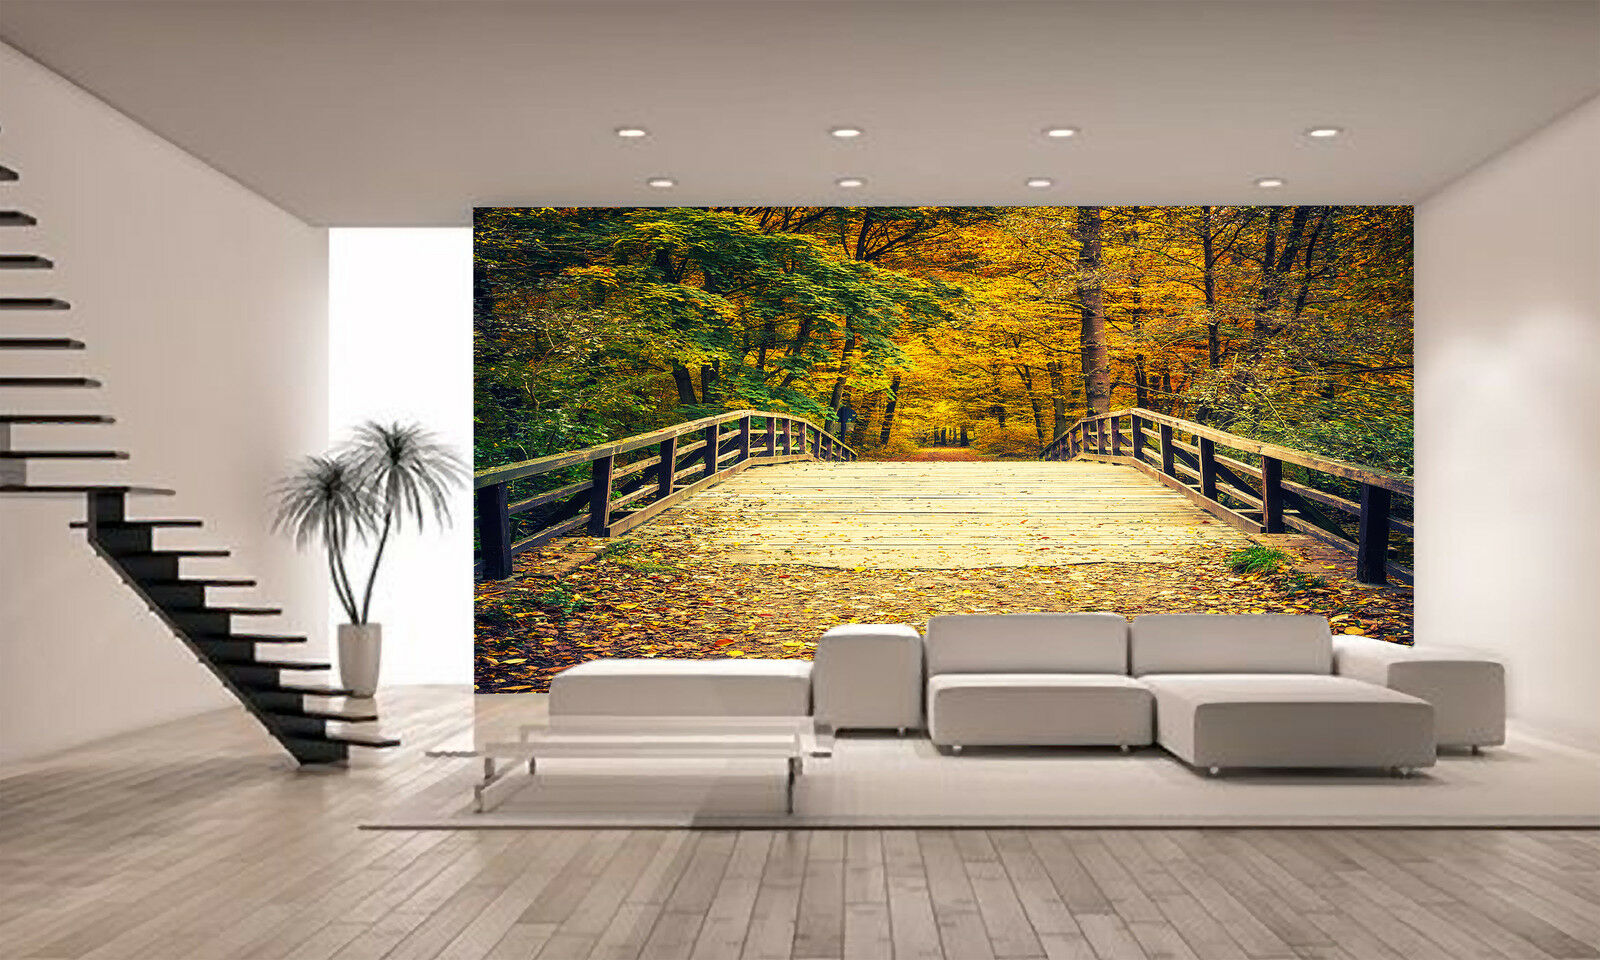 Bridge in Autumn Forest Wall Mural Photo Wallpaper GIANT DECOR Paper Poster